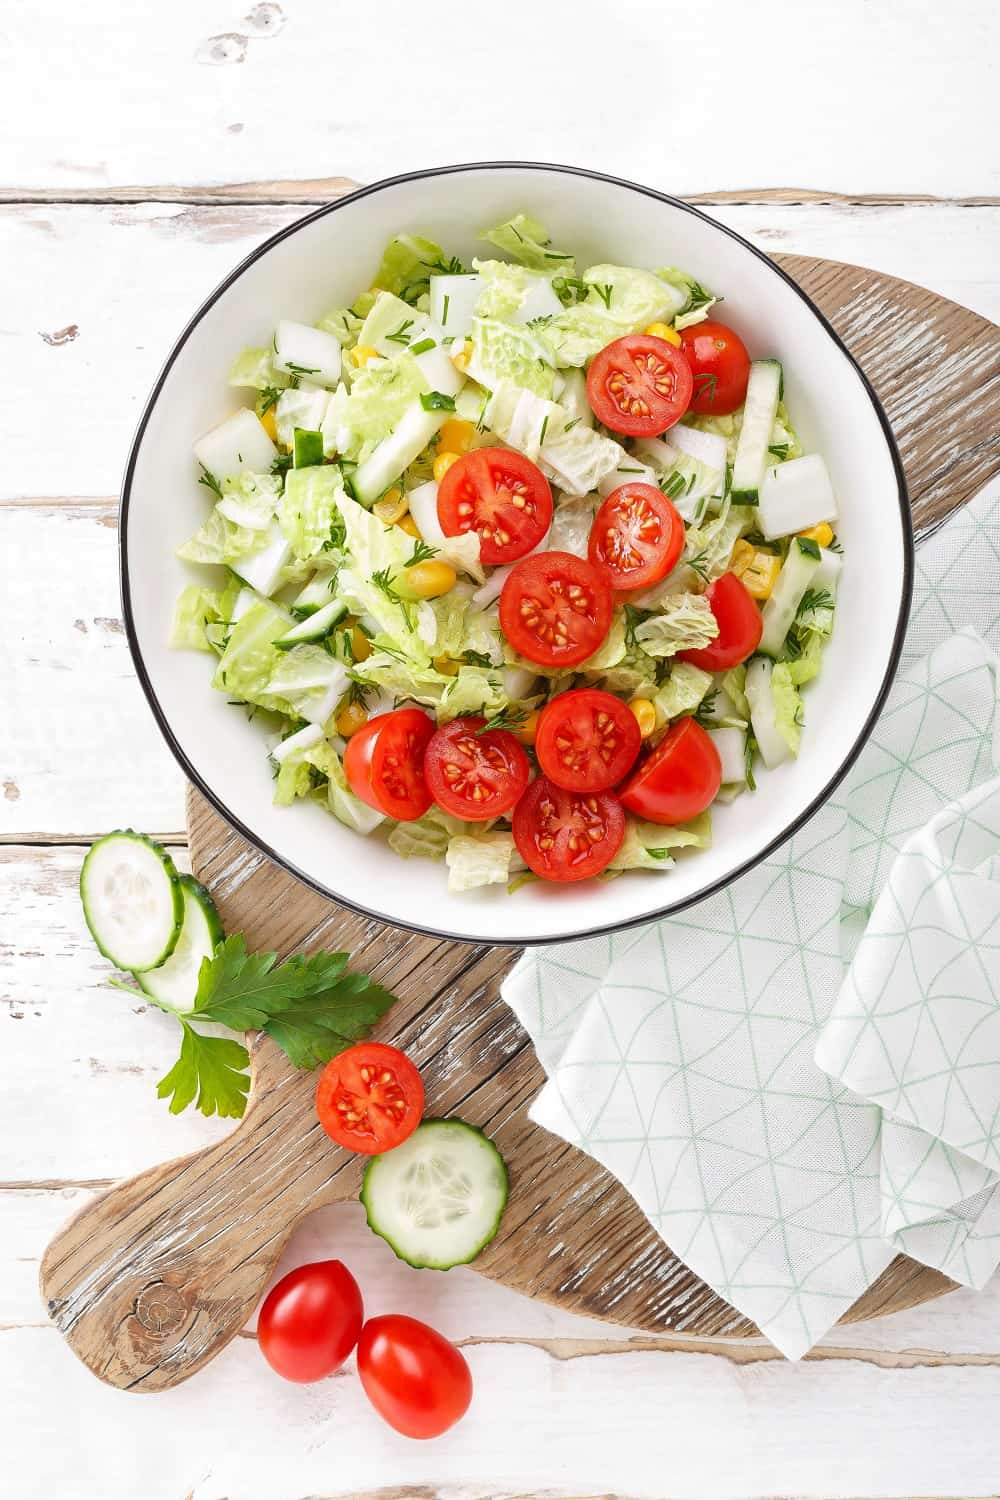 Healthy vegetable salad with chinese cabbage